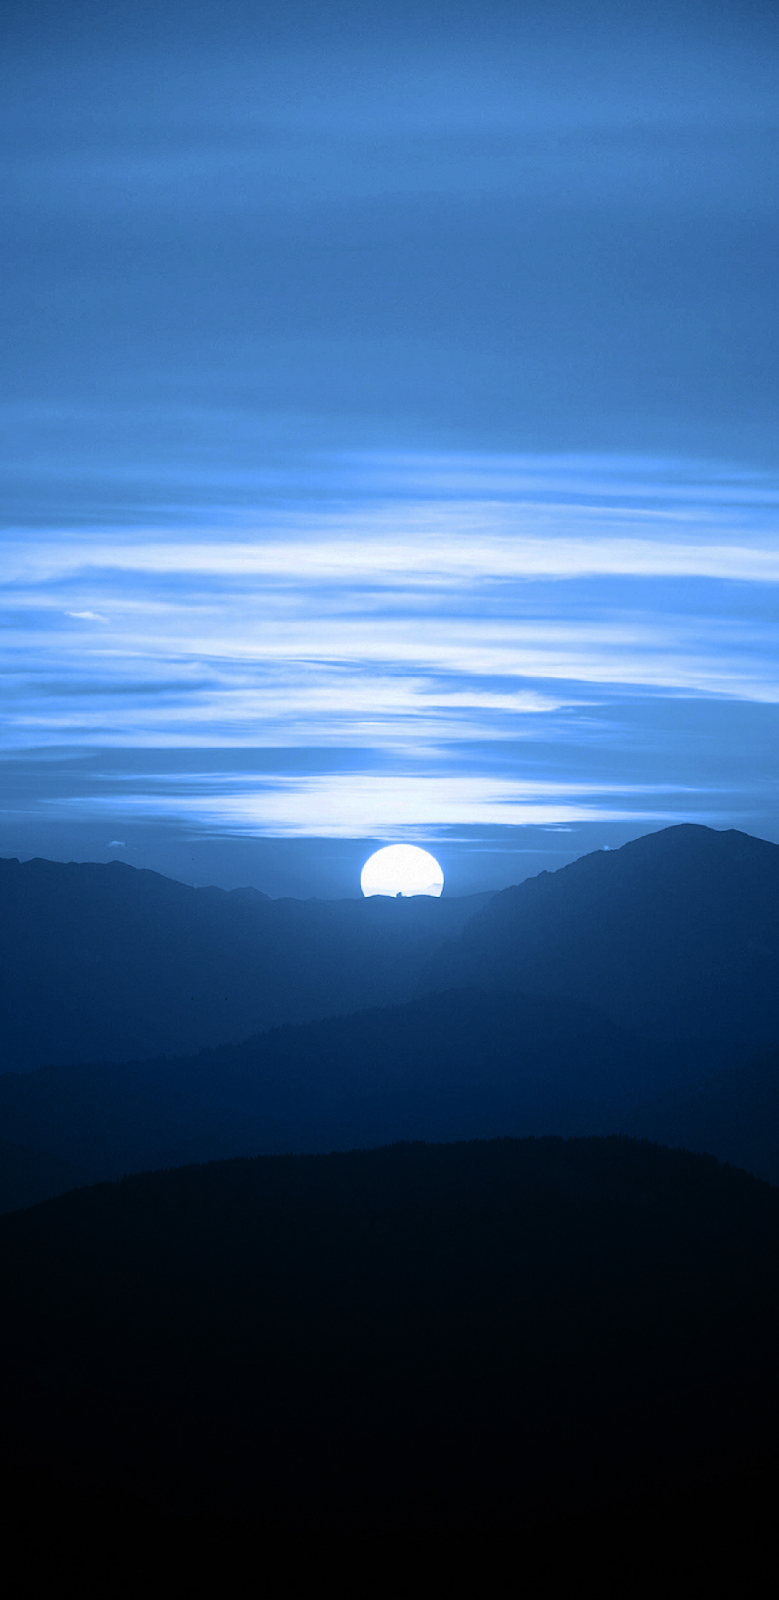 Under The Blue Moon In 2020 Beautiful Wallpapers Backgrounds Cool Wallpapers For Phones Beautiful Wallpapers